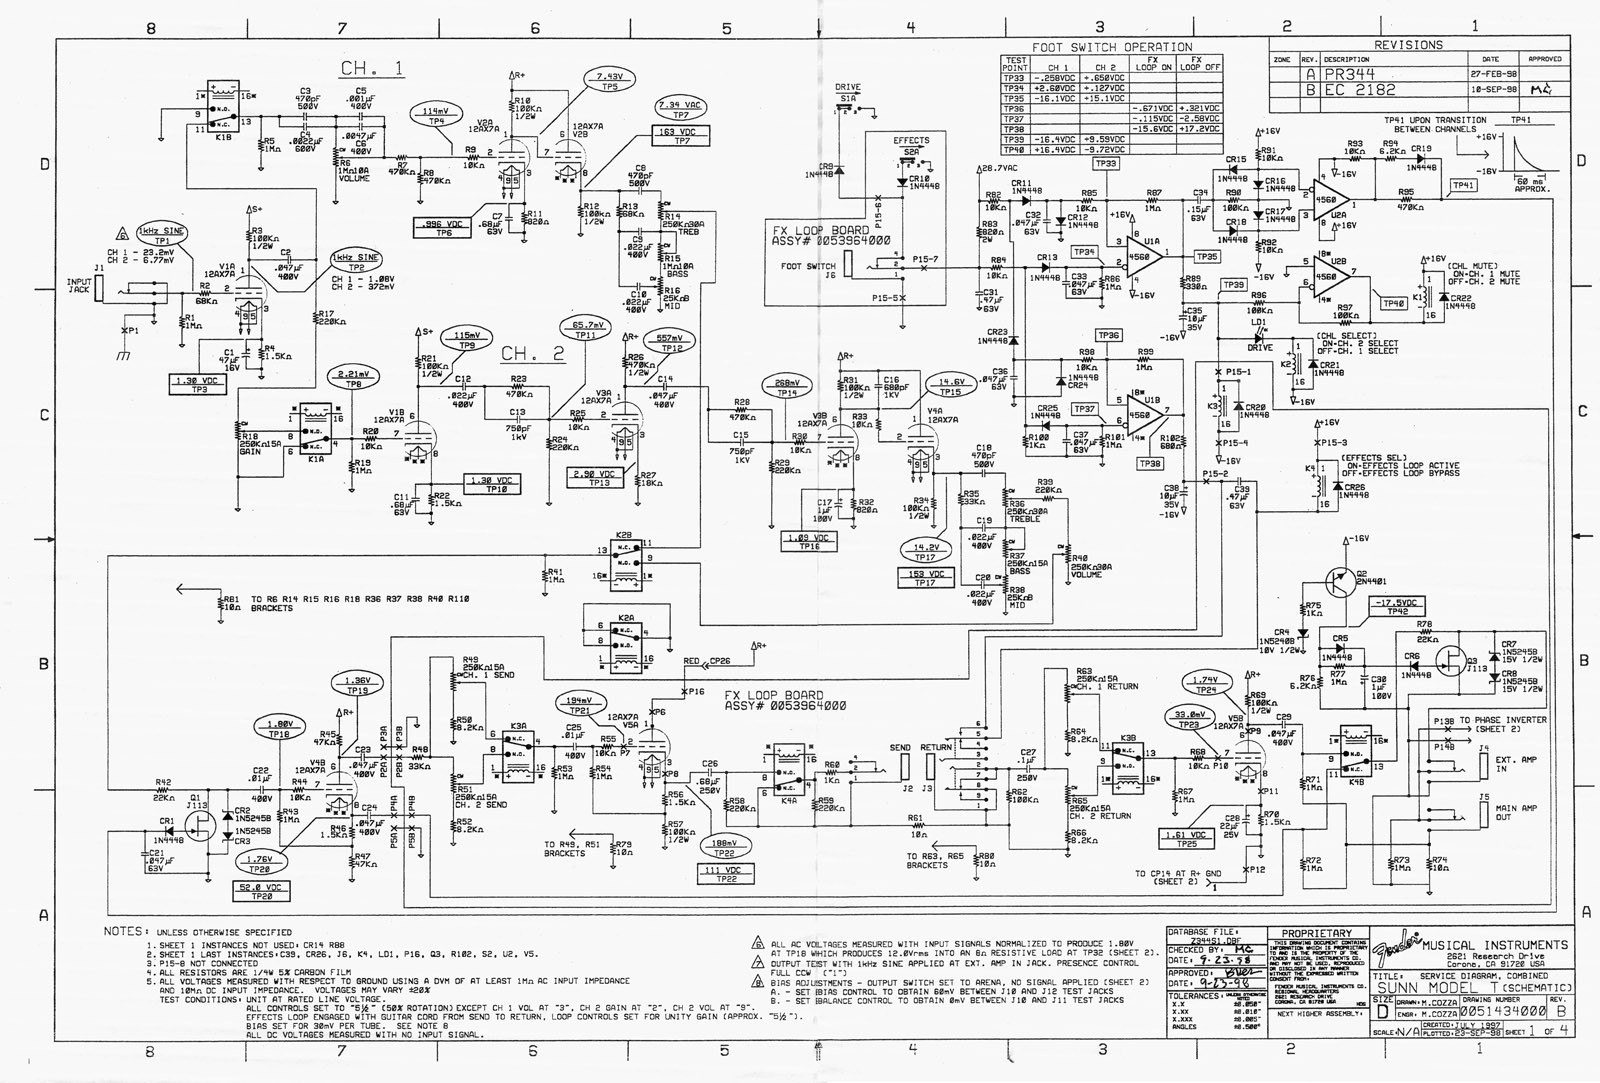 ground wire diagram toyota tacoma , wire diagram 92 jeep wrangler ,  electrical engineering plan of study , fuse box pull outs , lng truck mack  le wiring